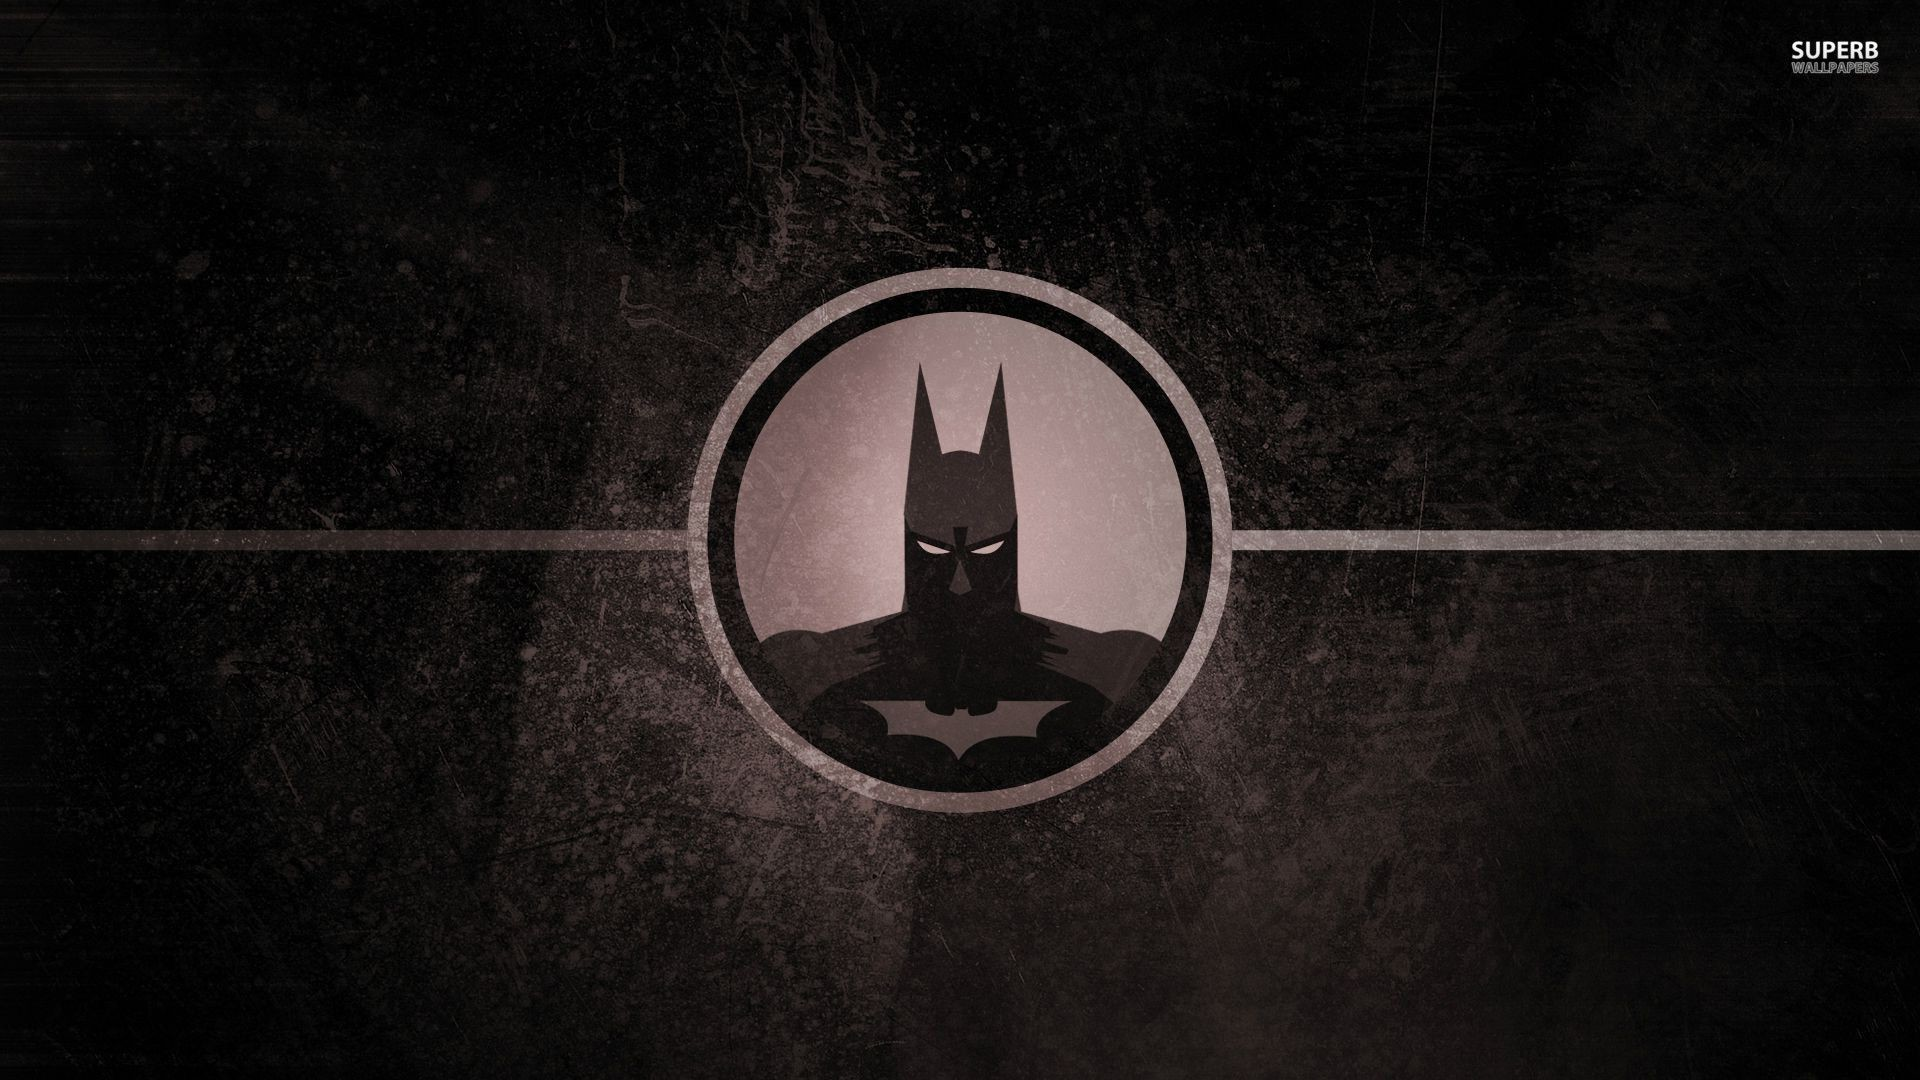 Batman Wallpapers for Computer 5189 – HD Wallpapers Site